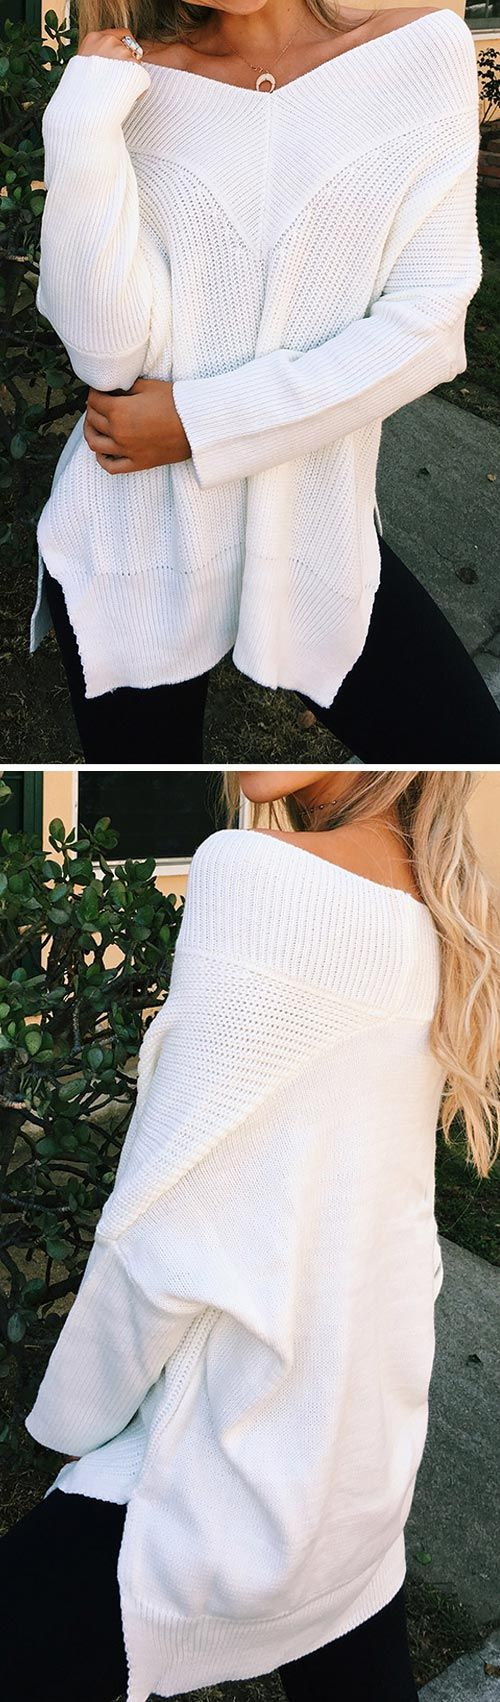 Hit it, $26.99 & Free shipping! Easy Return! Warm up now! Beautifully high-low design and pure fresh color, this piece is the perfect addition to your wardrobe.